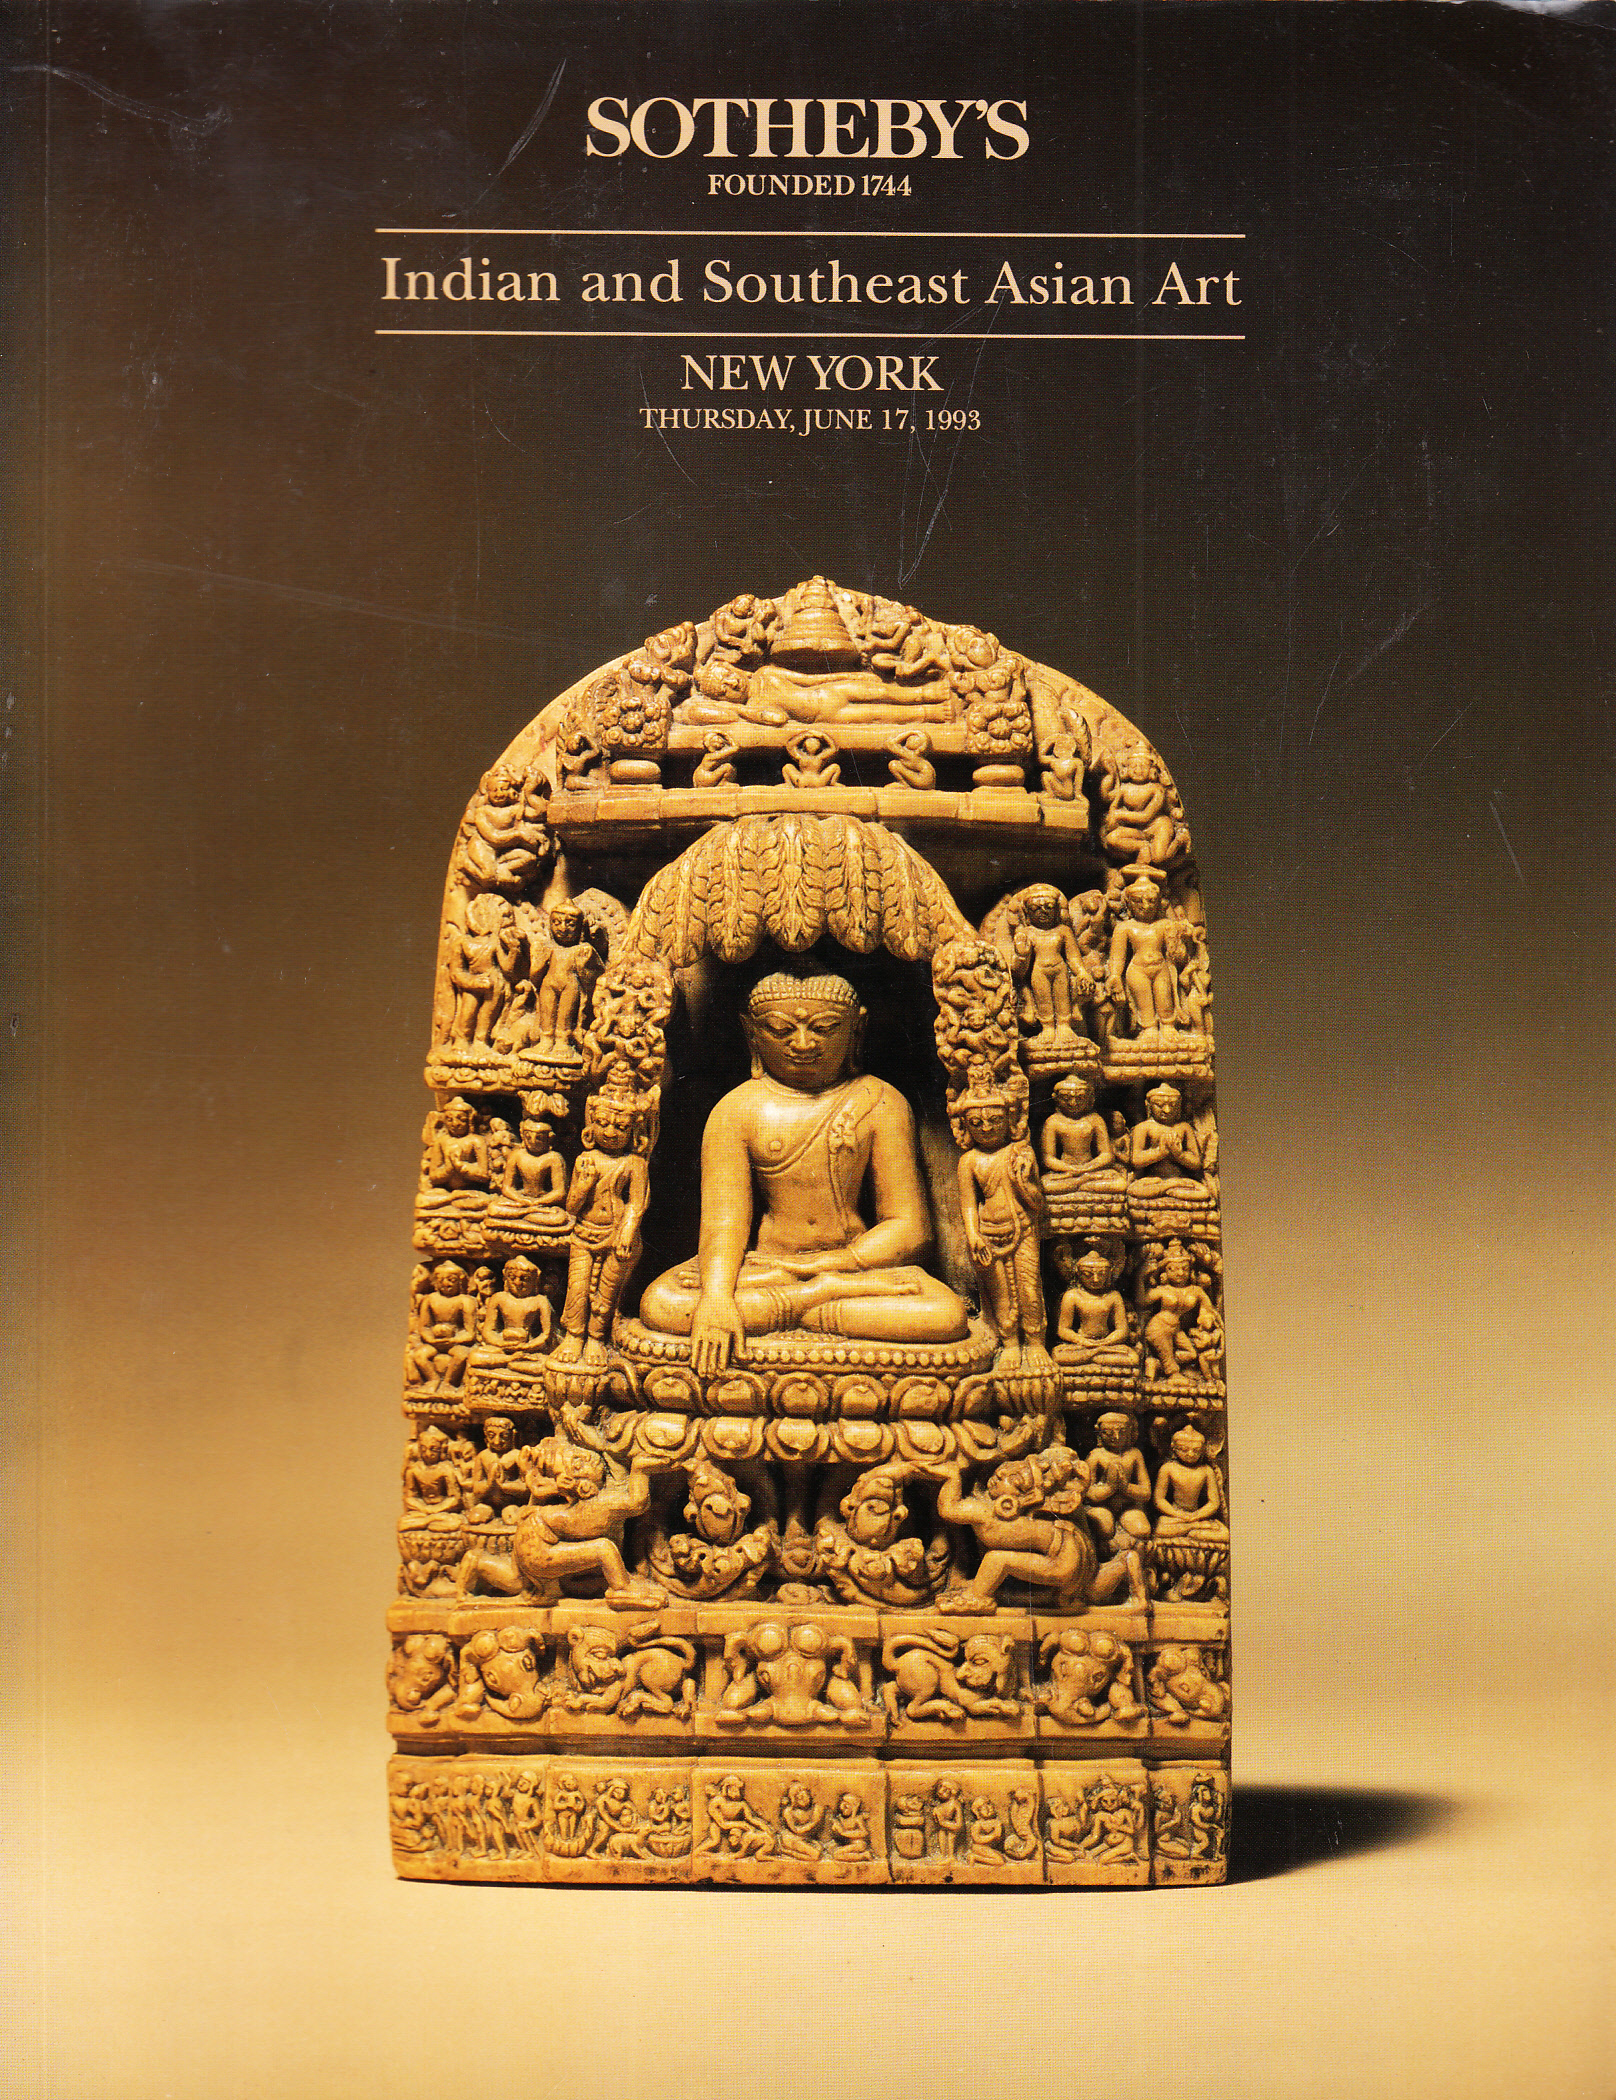 So Aa Sotheby S Indian And Southeast Asian Art New York 6